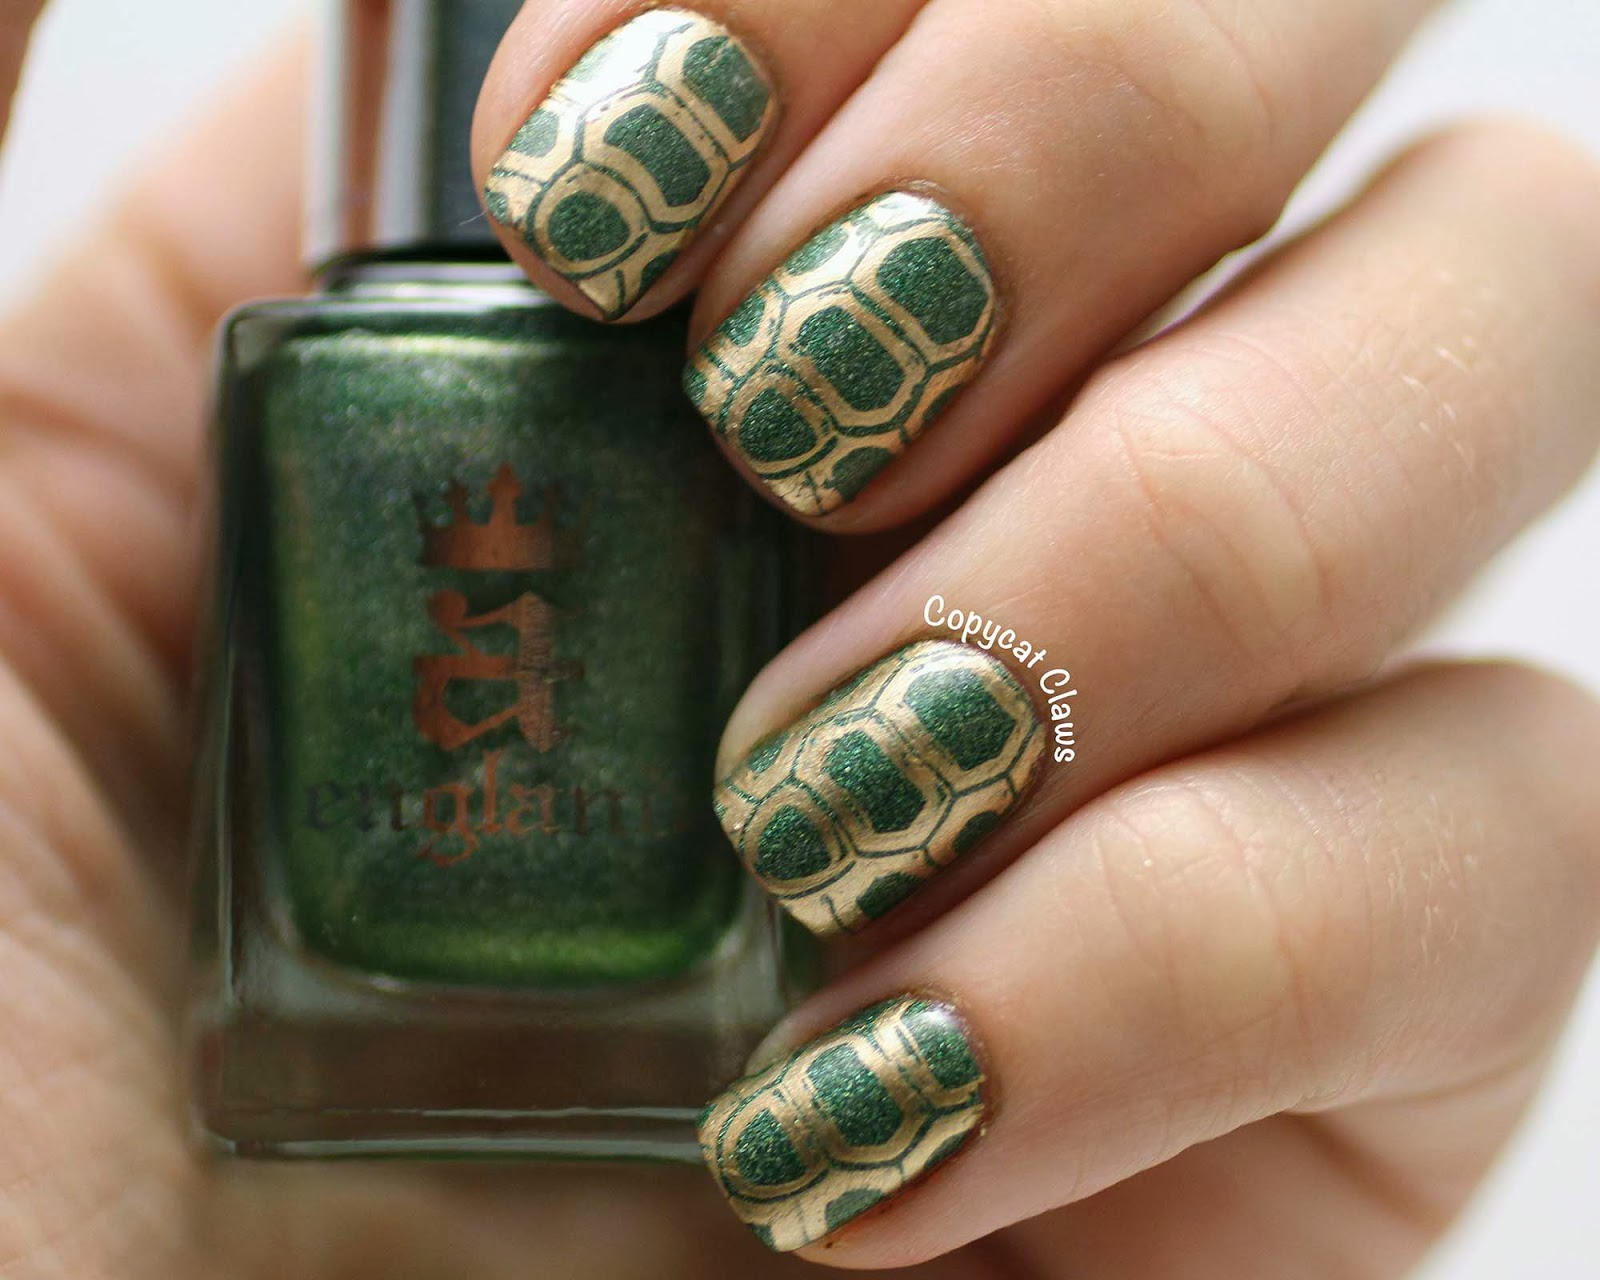 Copycat Claws: Turtle Nails & A England Dragon Swatch